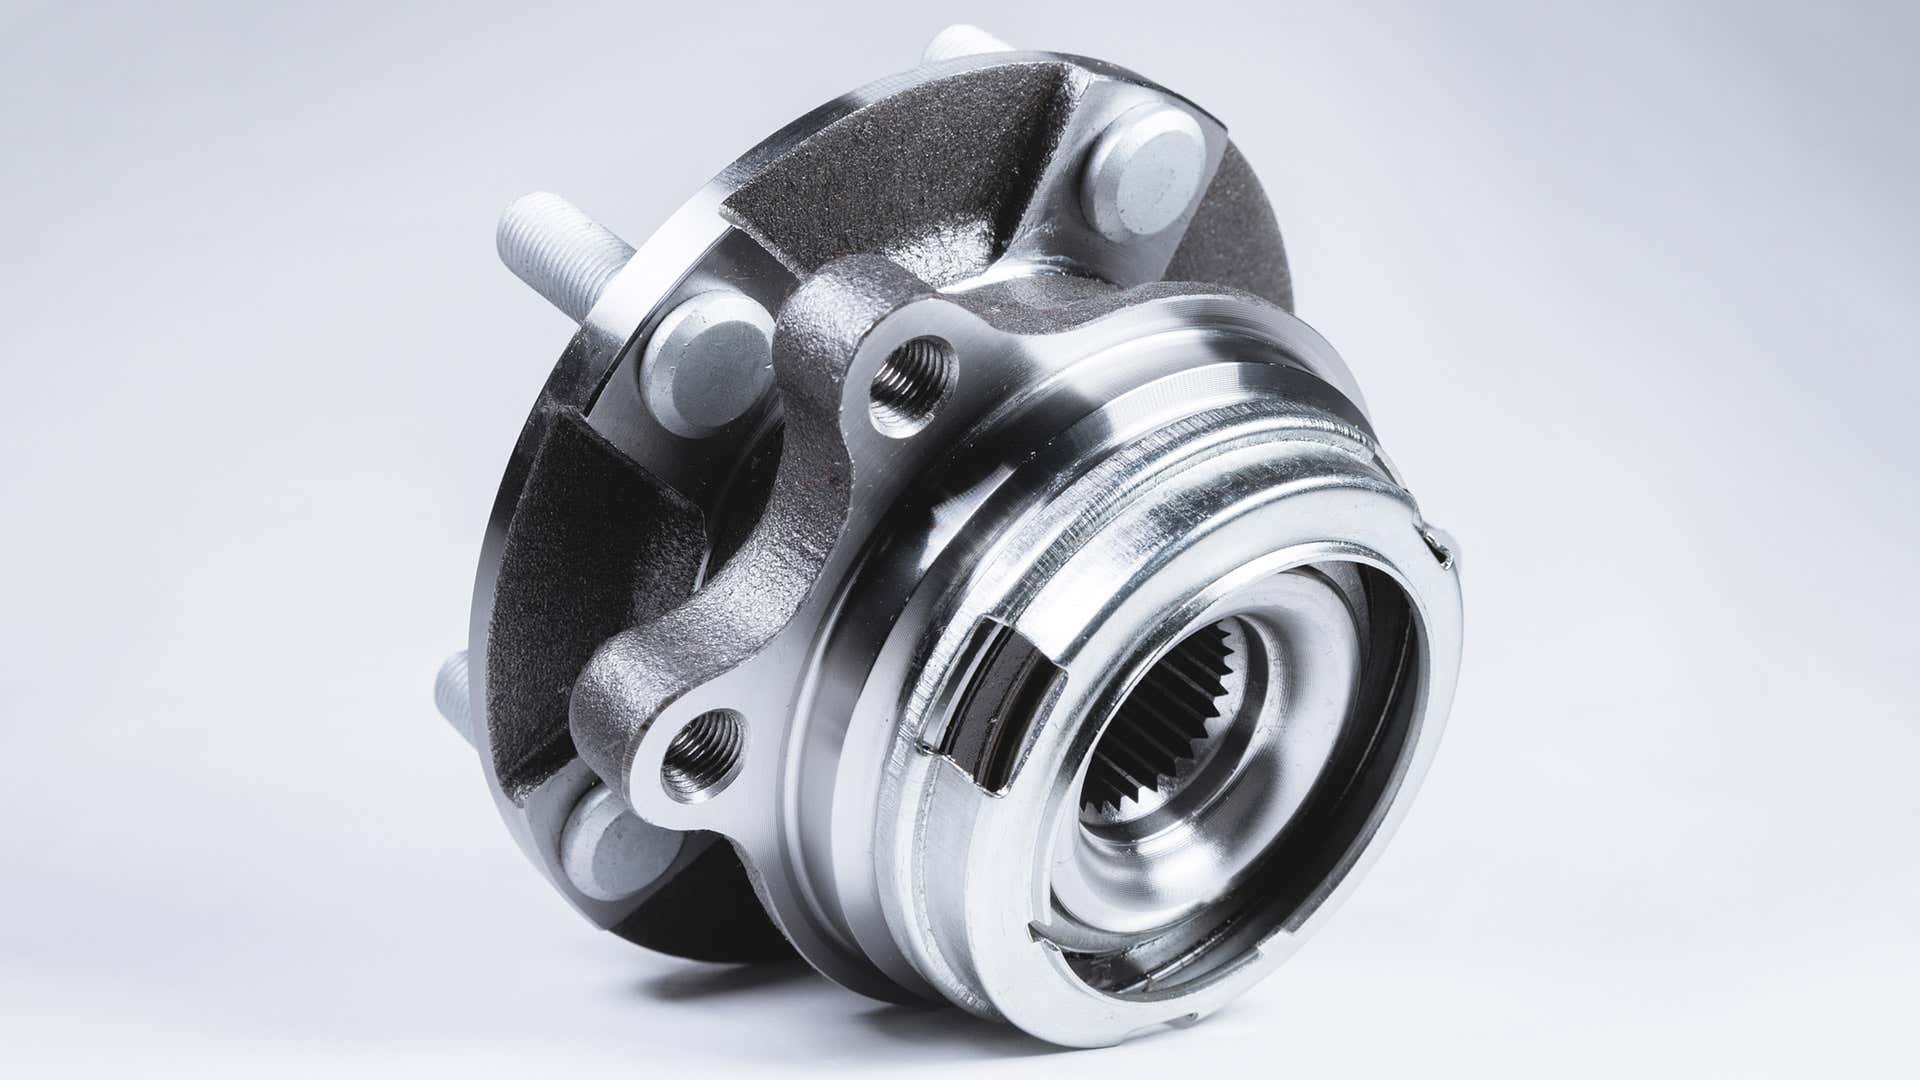 A wheel hub assembly on a gray background.